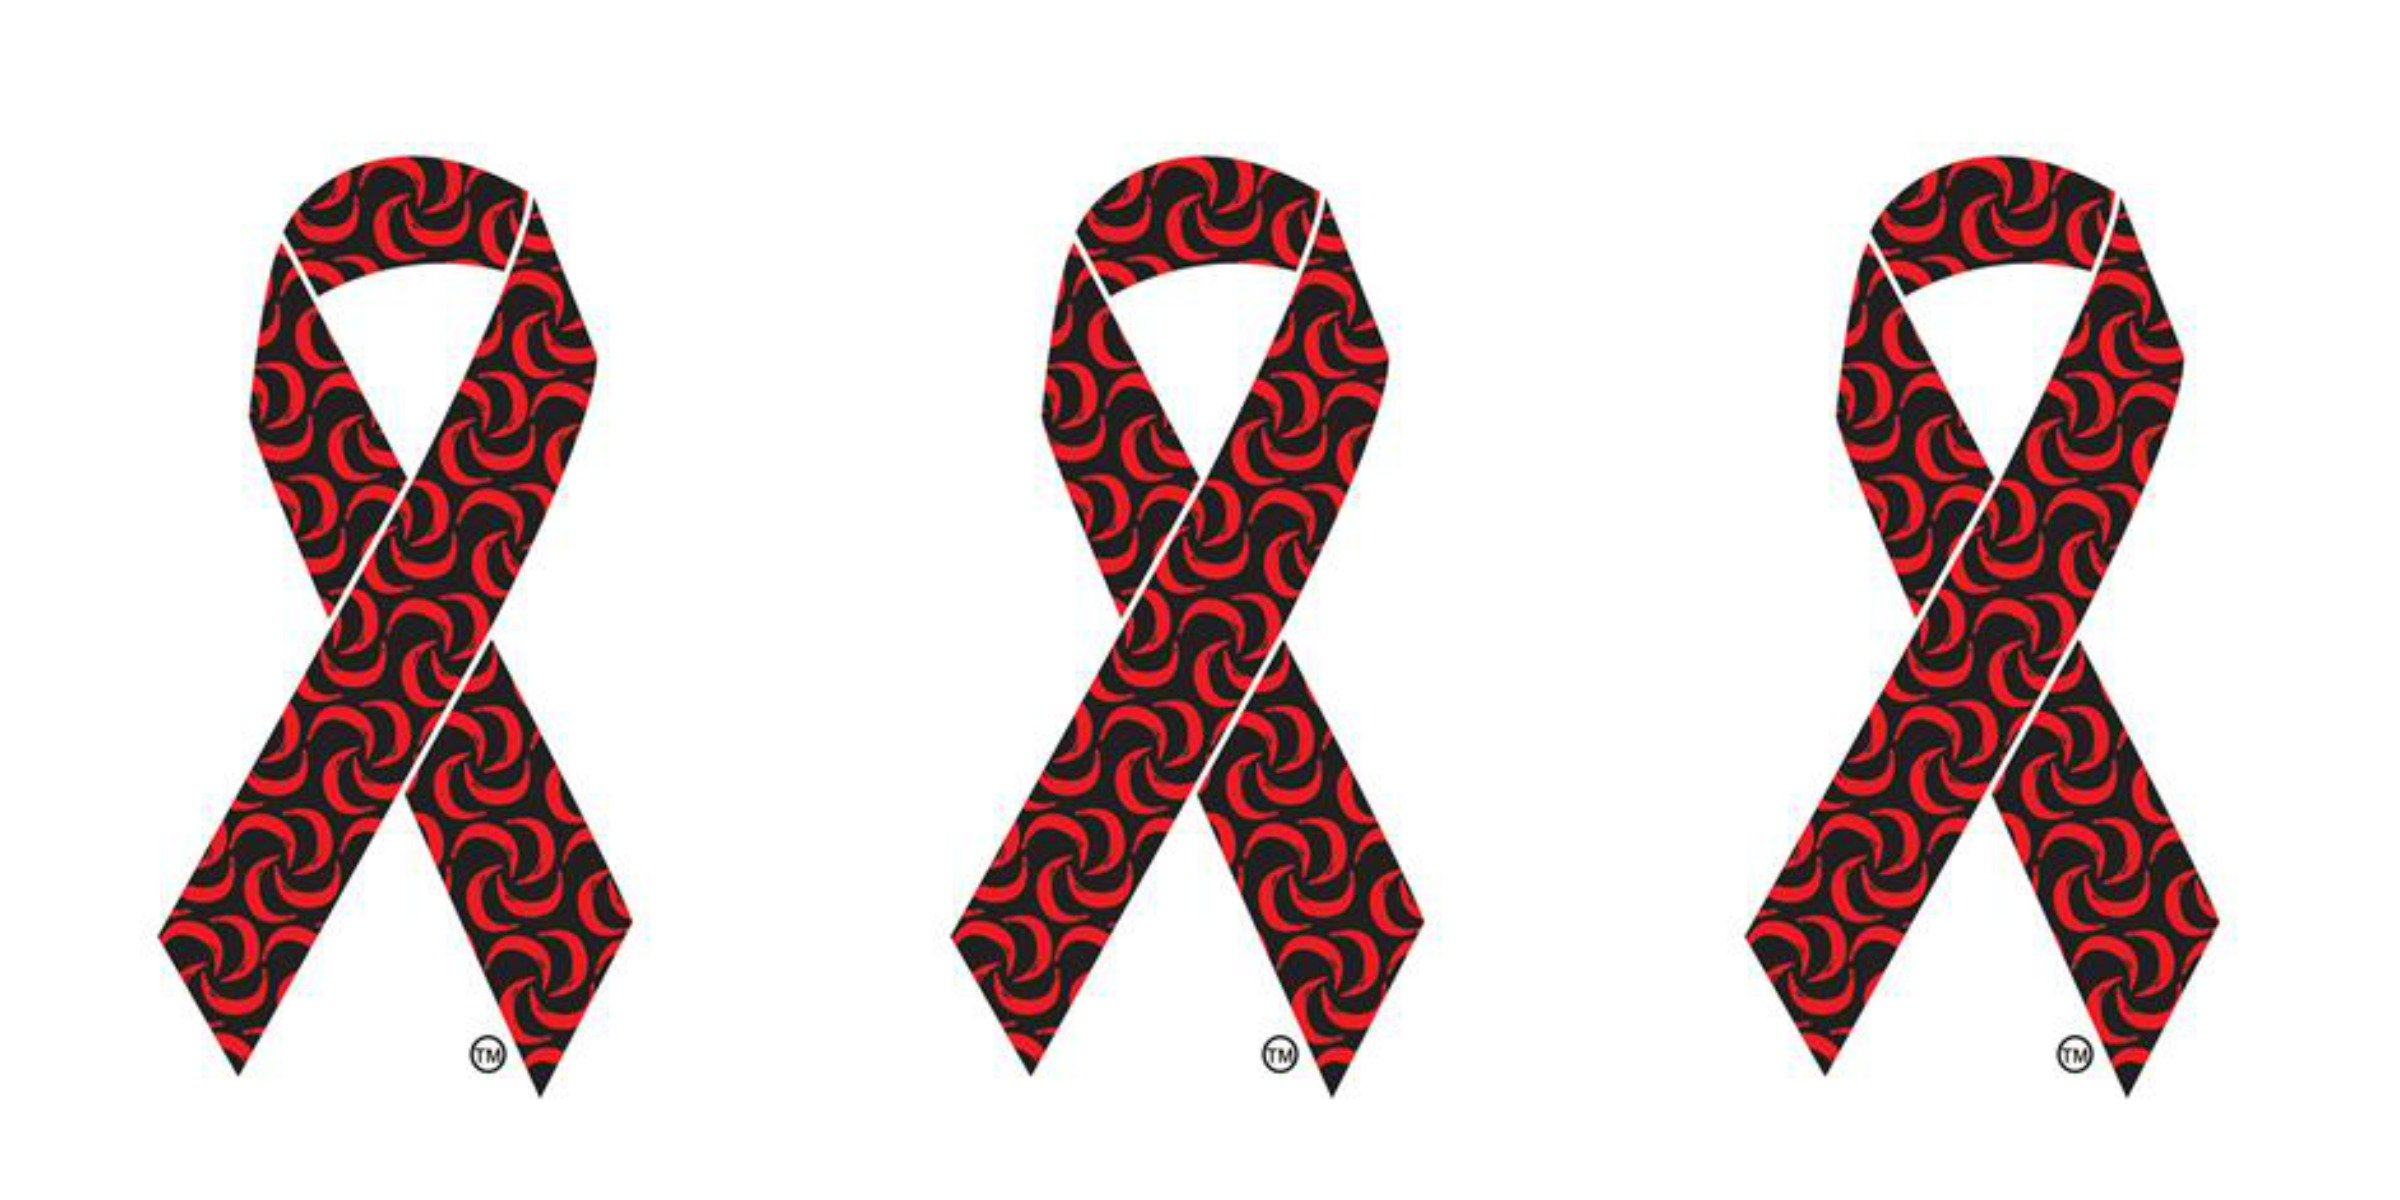 scd ribbon collage